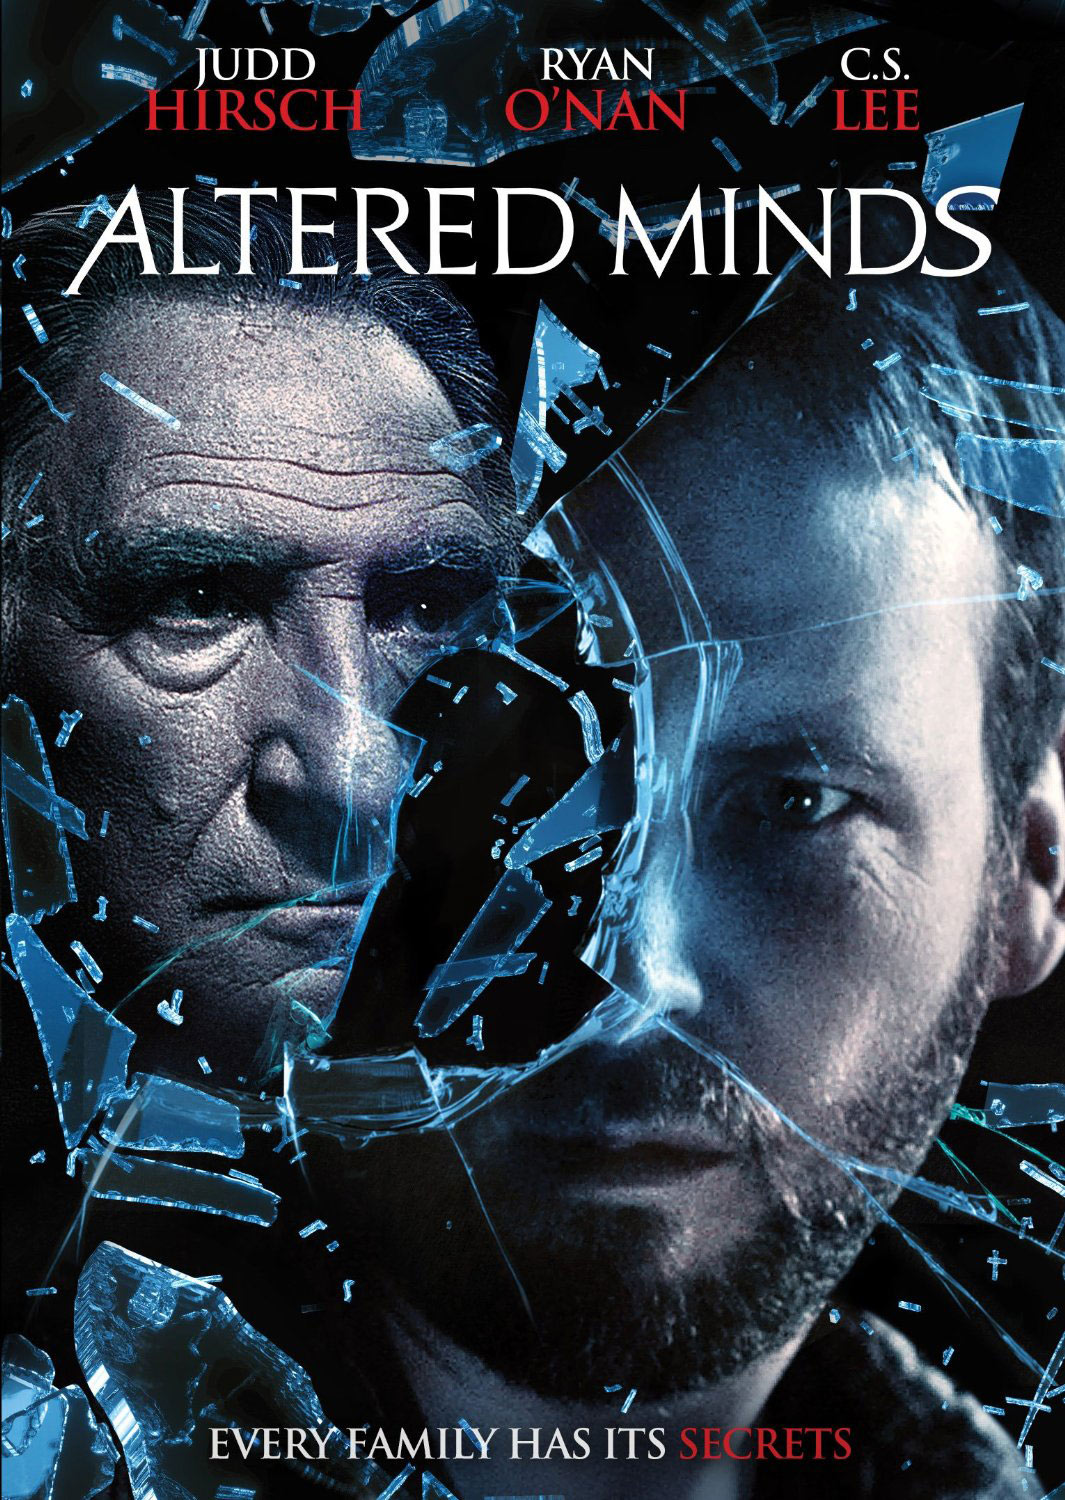 altered-minds-dvd-cover-art-images